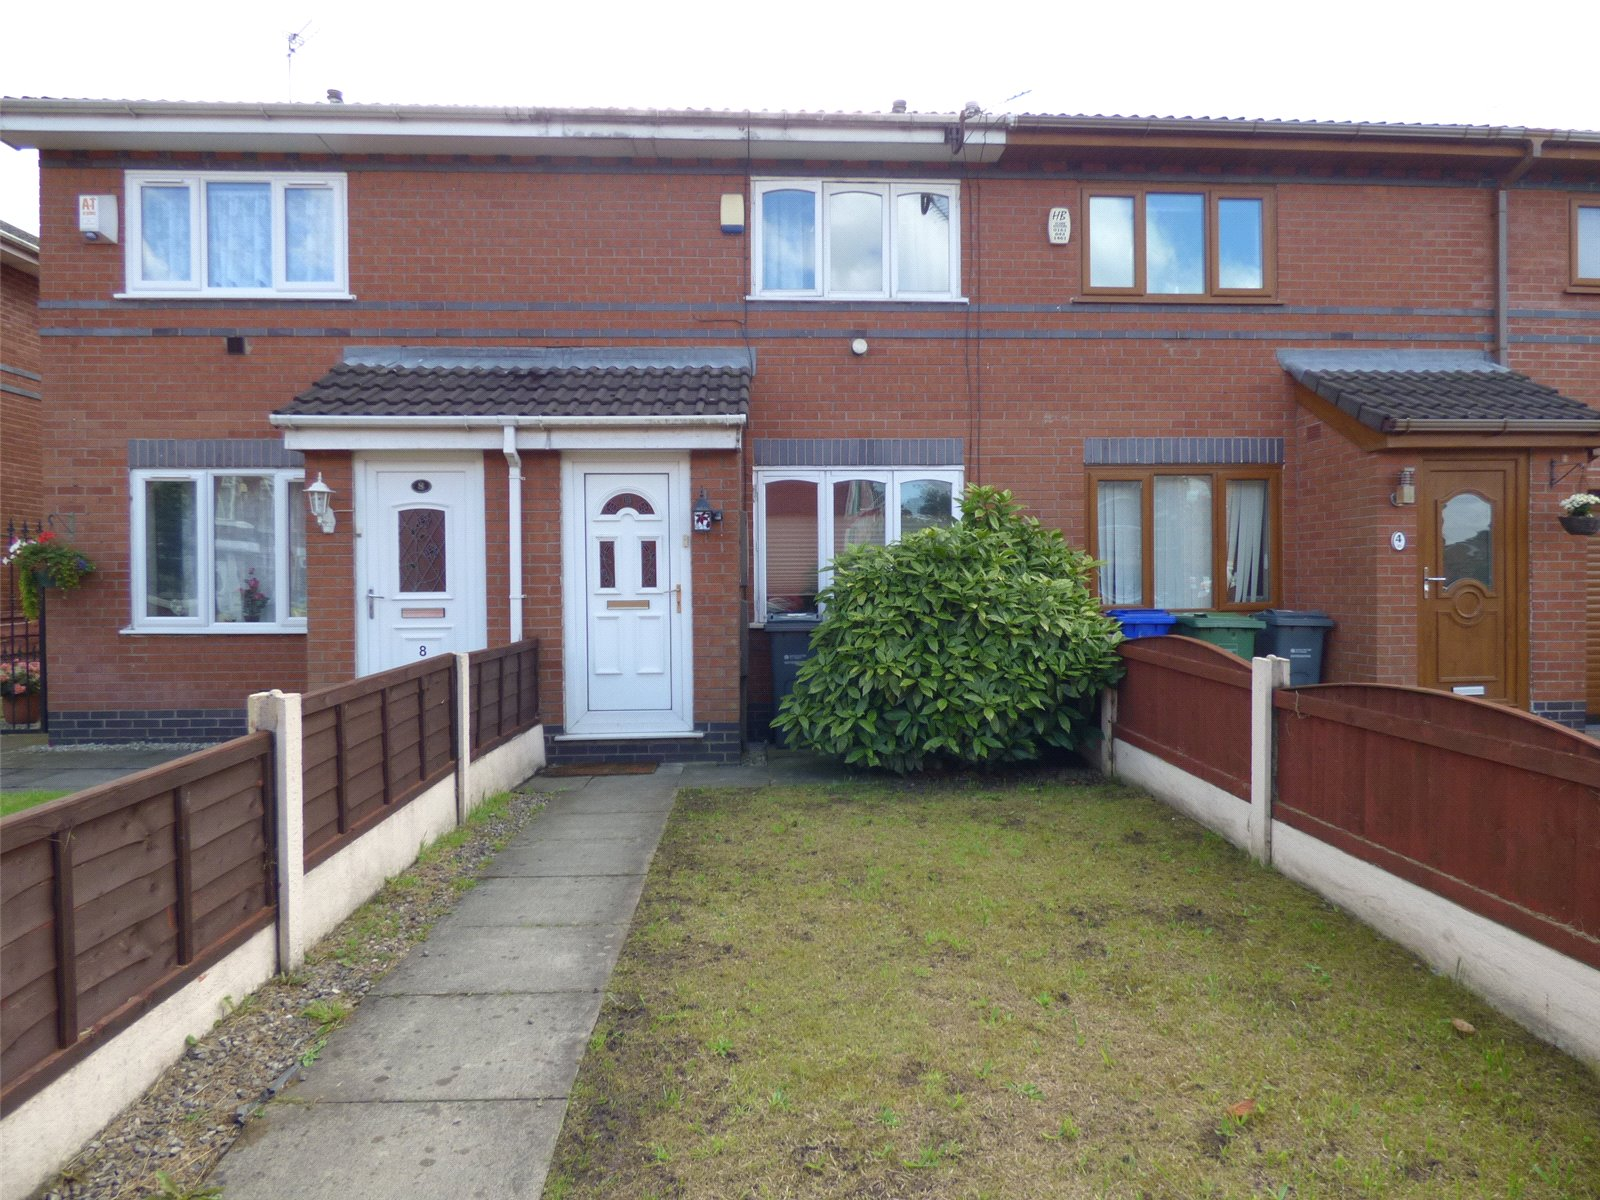 2 Bedrooms Terraced House for sale in Zeta Street, Moston, Manchester, M9